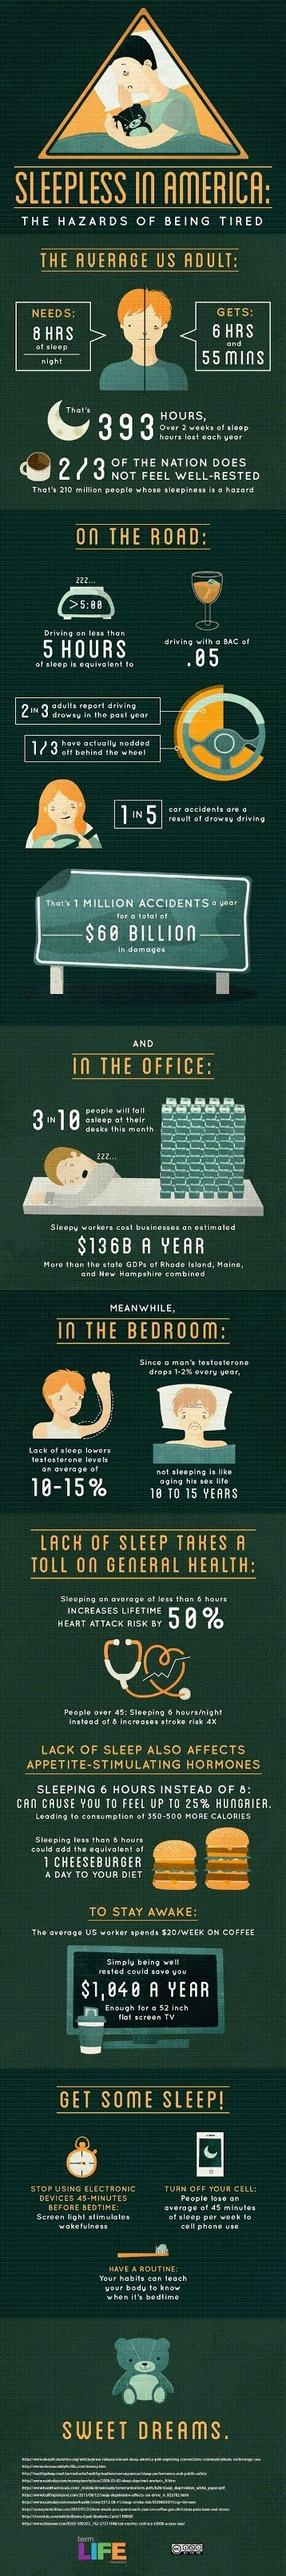 Seepless in America: The hazards of being tired #infographic